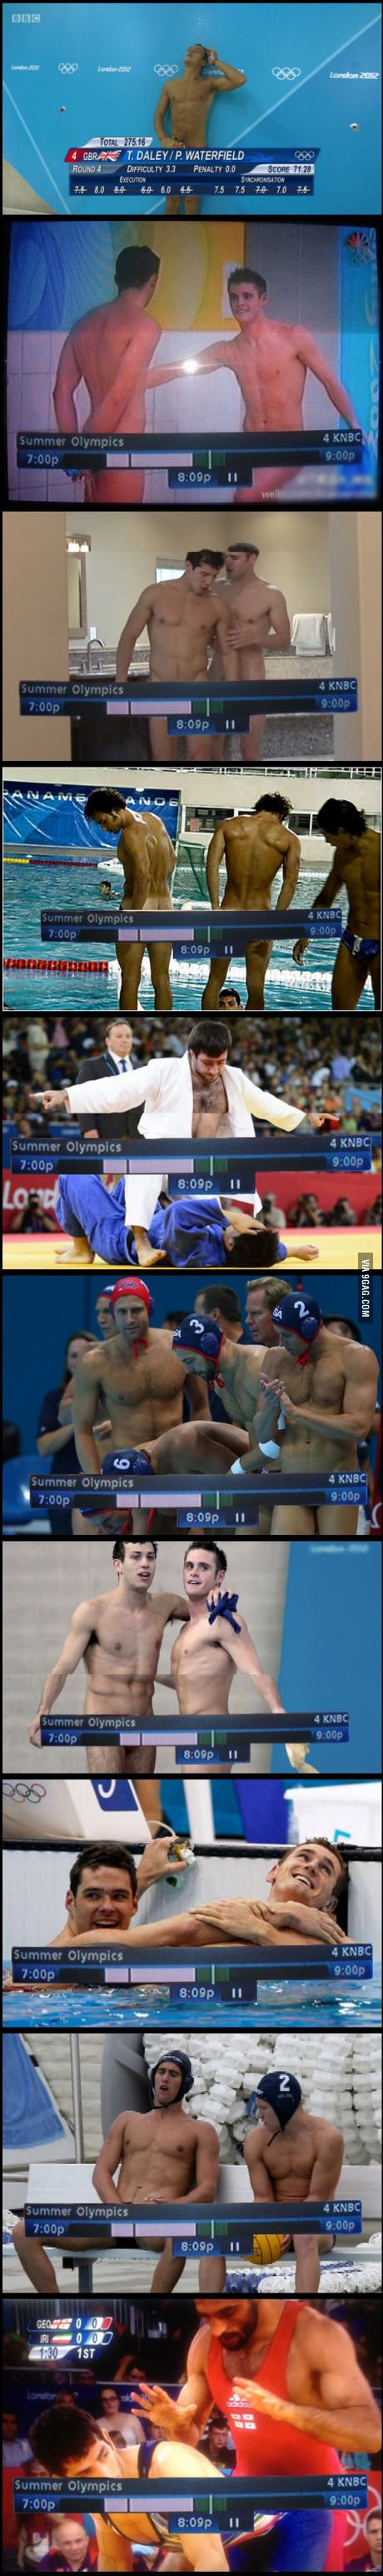 Gay porn or the Olympics, you decide.